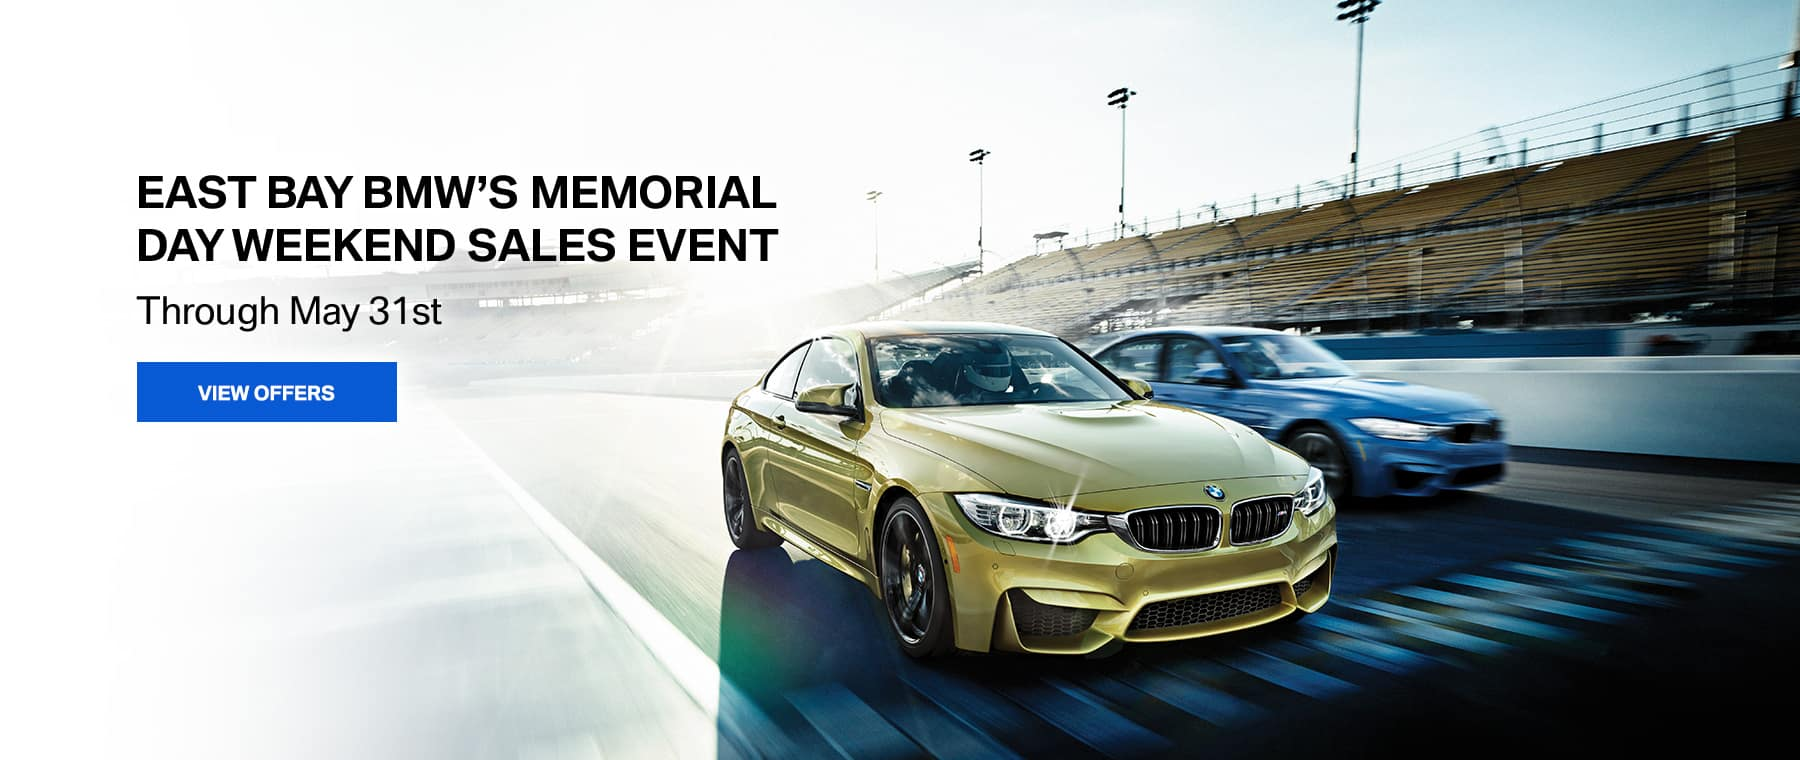 east bay bmw memorial day